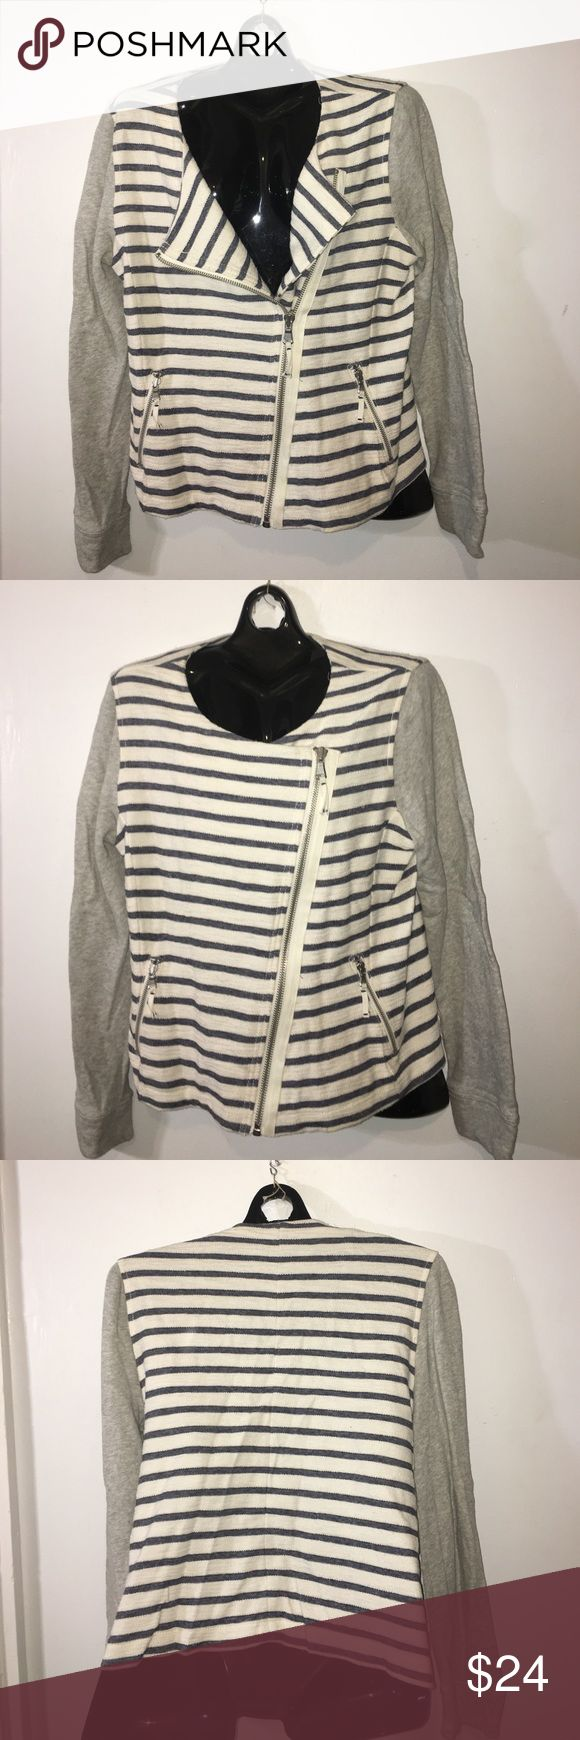 Lou & Grey zip up cardigan L NOT Madewell! For visibility only. Stylish Lou & Grey diagonal zip up cardigan. 2 zipper pockets. Striped body w/ grey sleeves. Soft sweatshirty material. EUC L Madewell Sweaters Cardigans